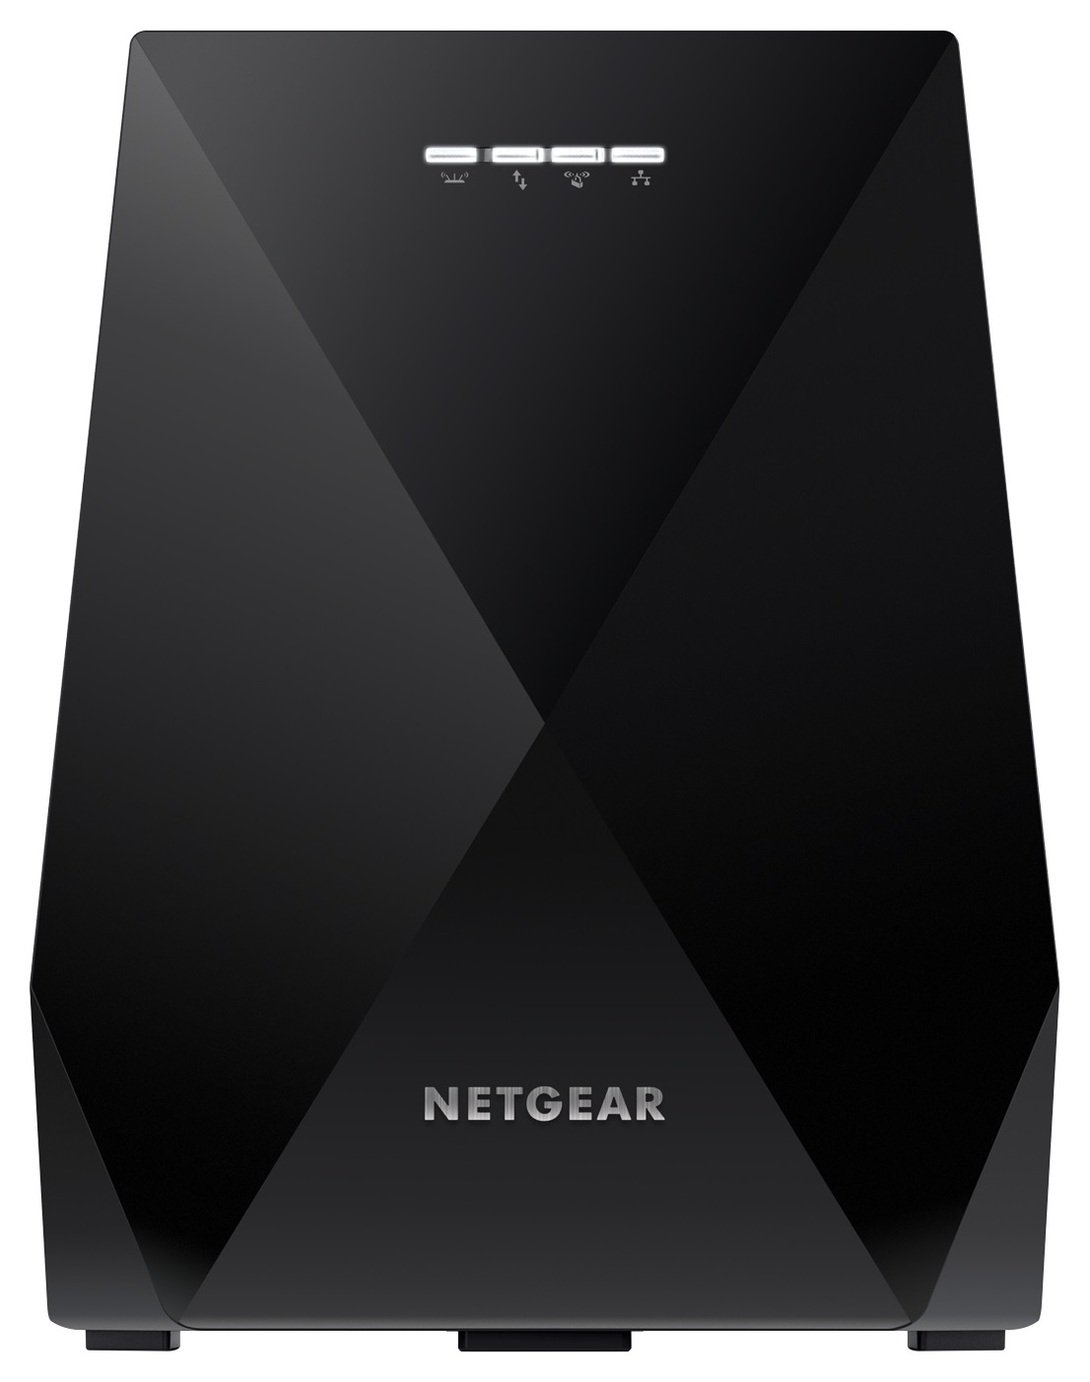 Netgear Nighthawk X6 AC2200 Tri-Band Wi-Fi Extender review